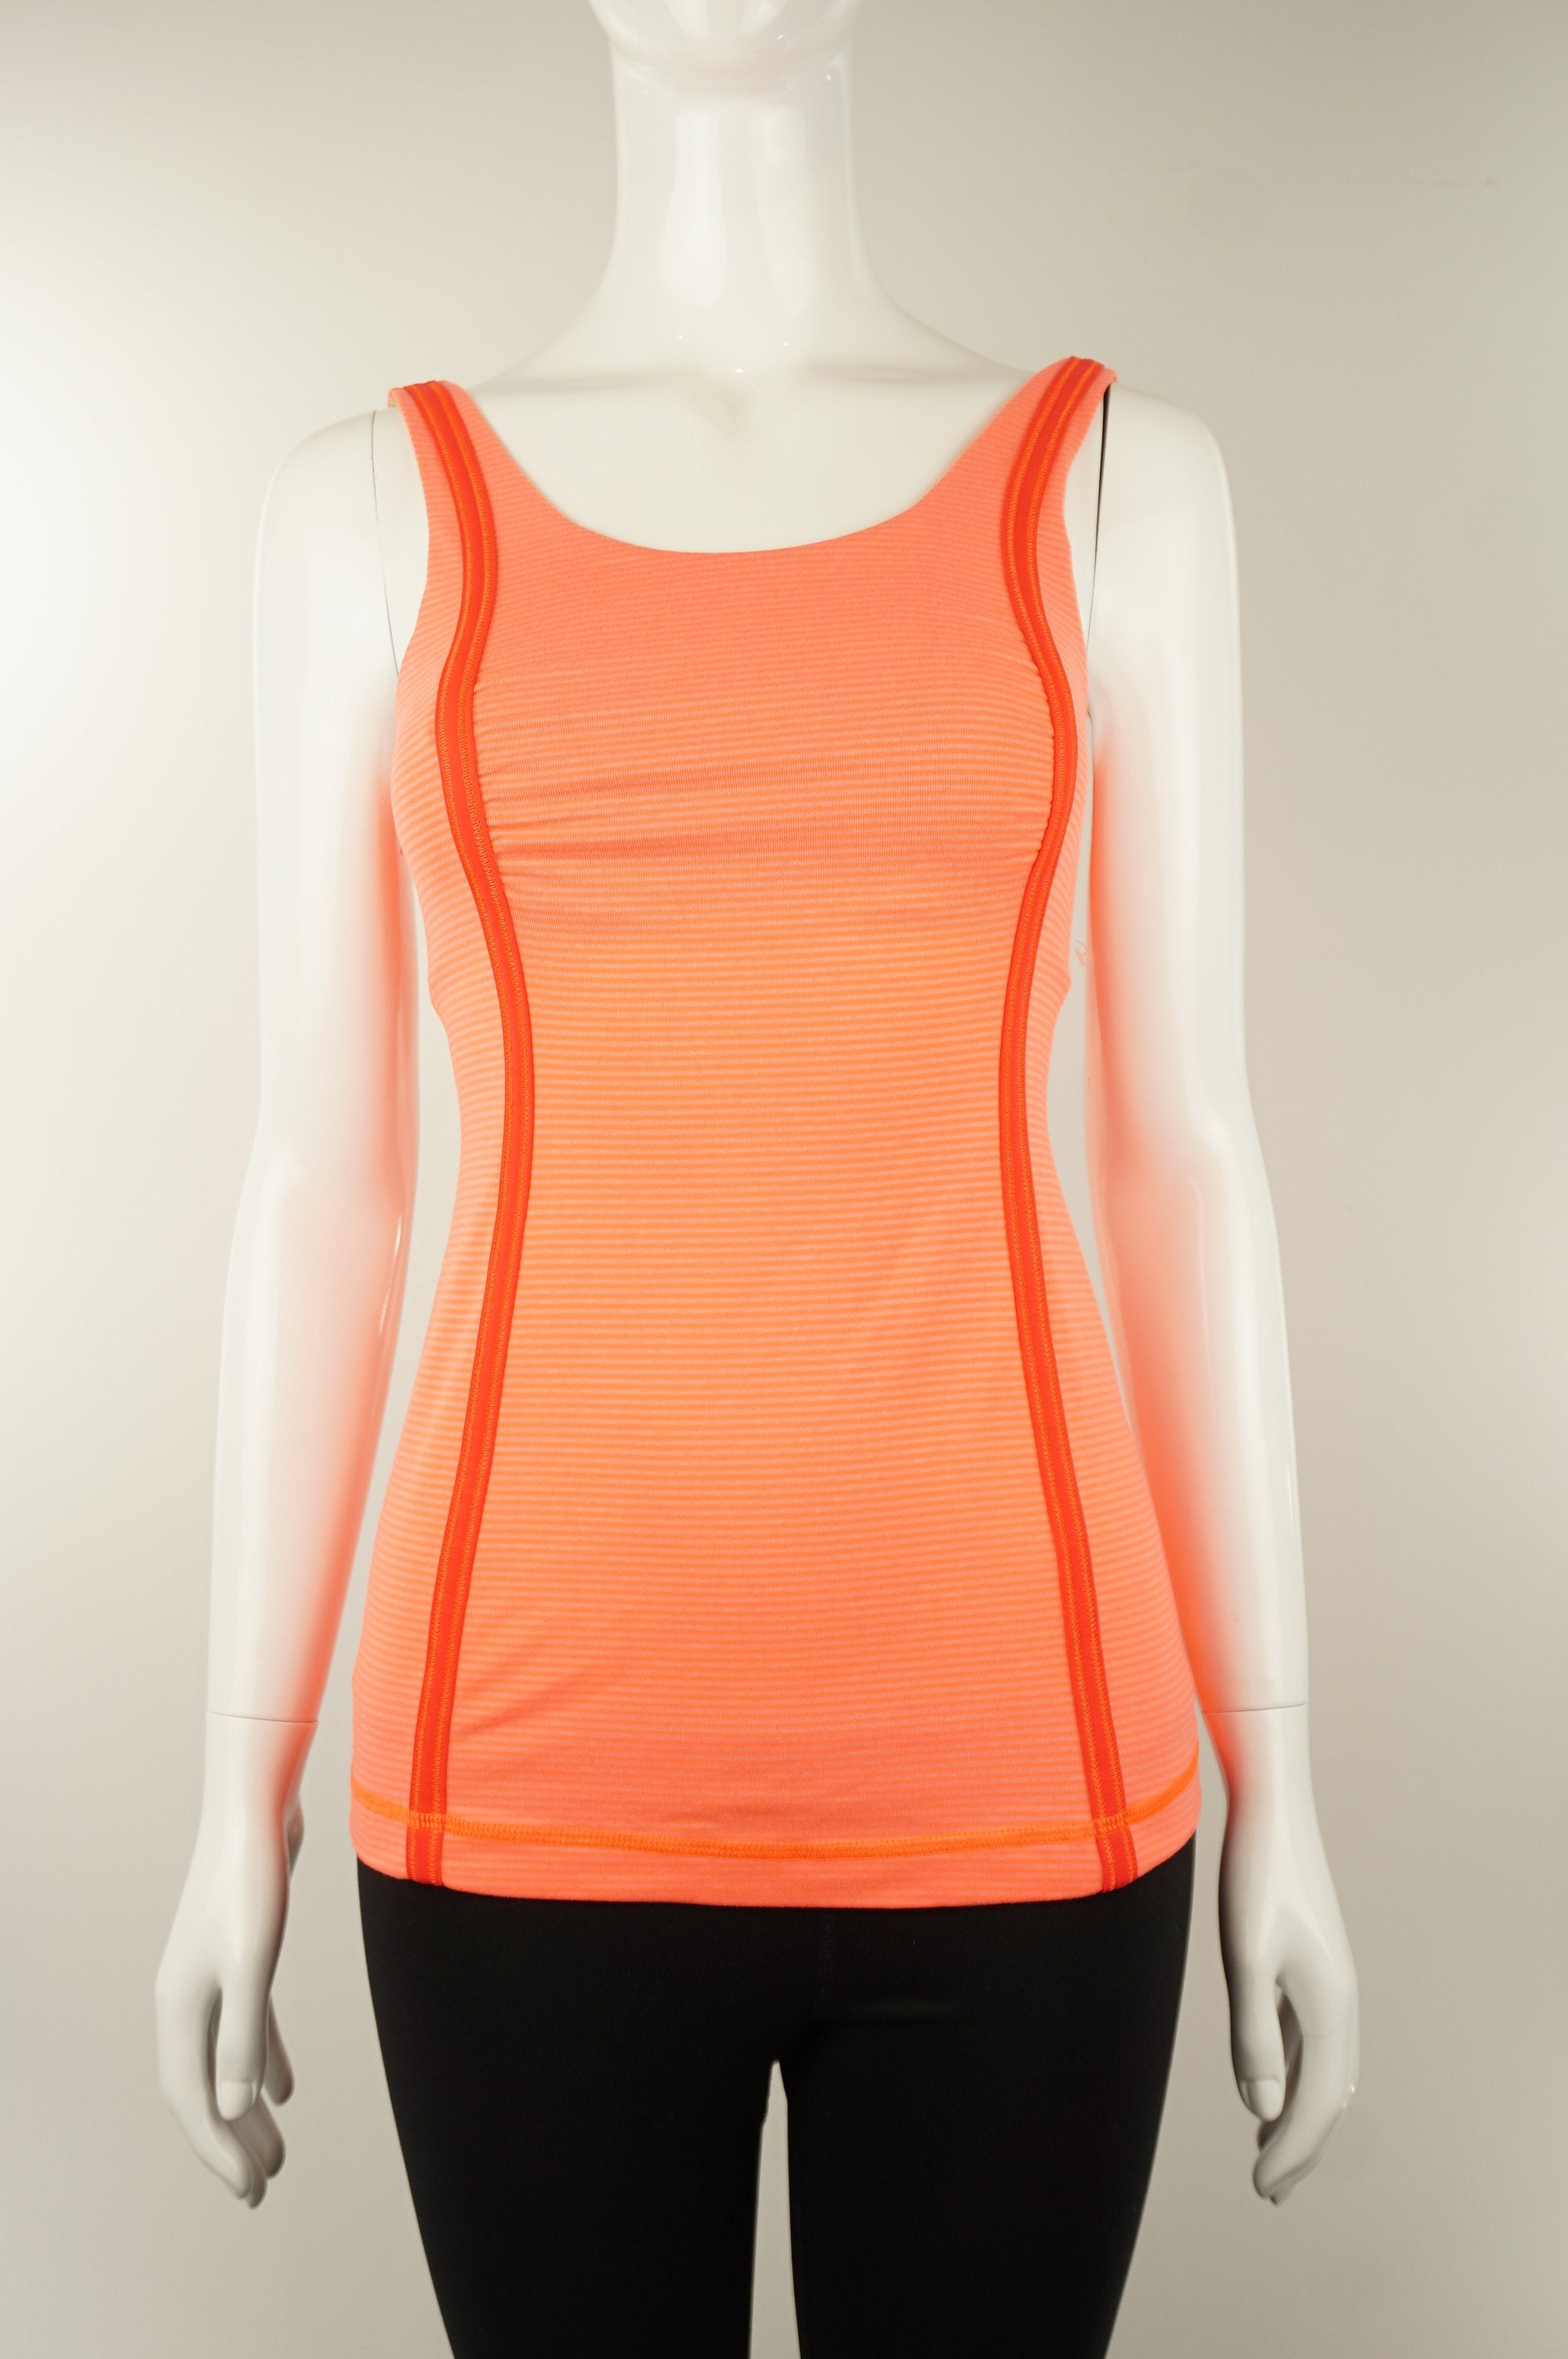 Lululemon Athletic Top, Yoga top/Athletic top/Vancouver street wear. Lululemon size 4. https://info.lululemon.com/help/size-chart, Pink, Nylon, Lycra, and Spandex, women's Activewear, women's Pink Activewear, Lululemon women's Activewear, Yoga, yoga pants, women's athletic wear, women's work out clothes, women's comfortable pants, fitness, fit